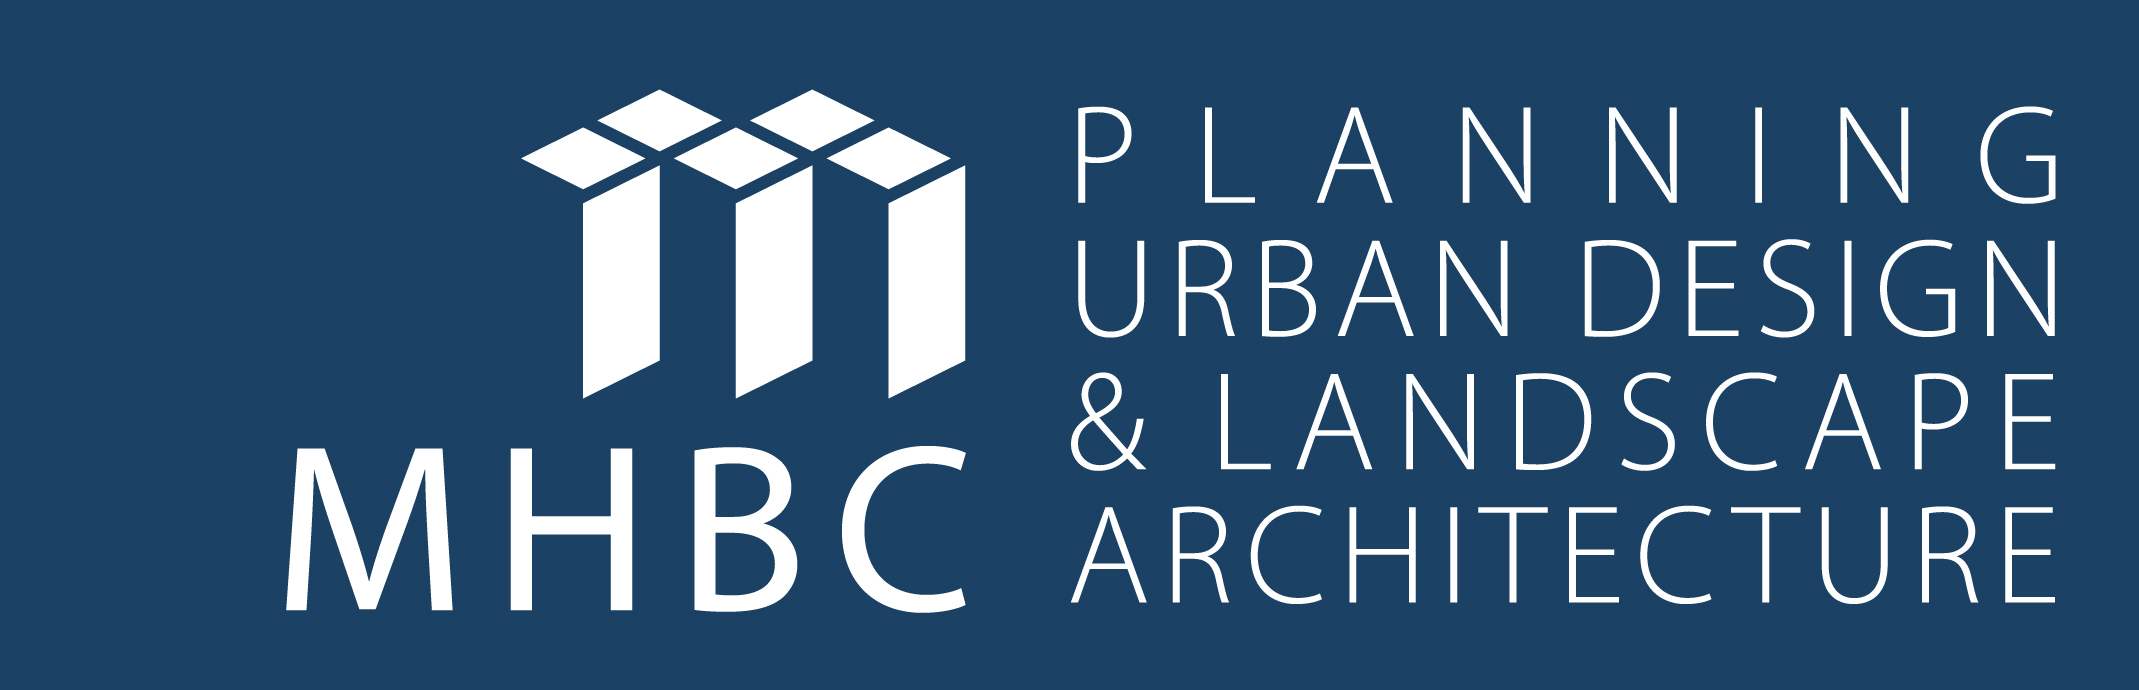 MHBC Planning Urban Design & Landscape Architecture